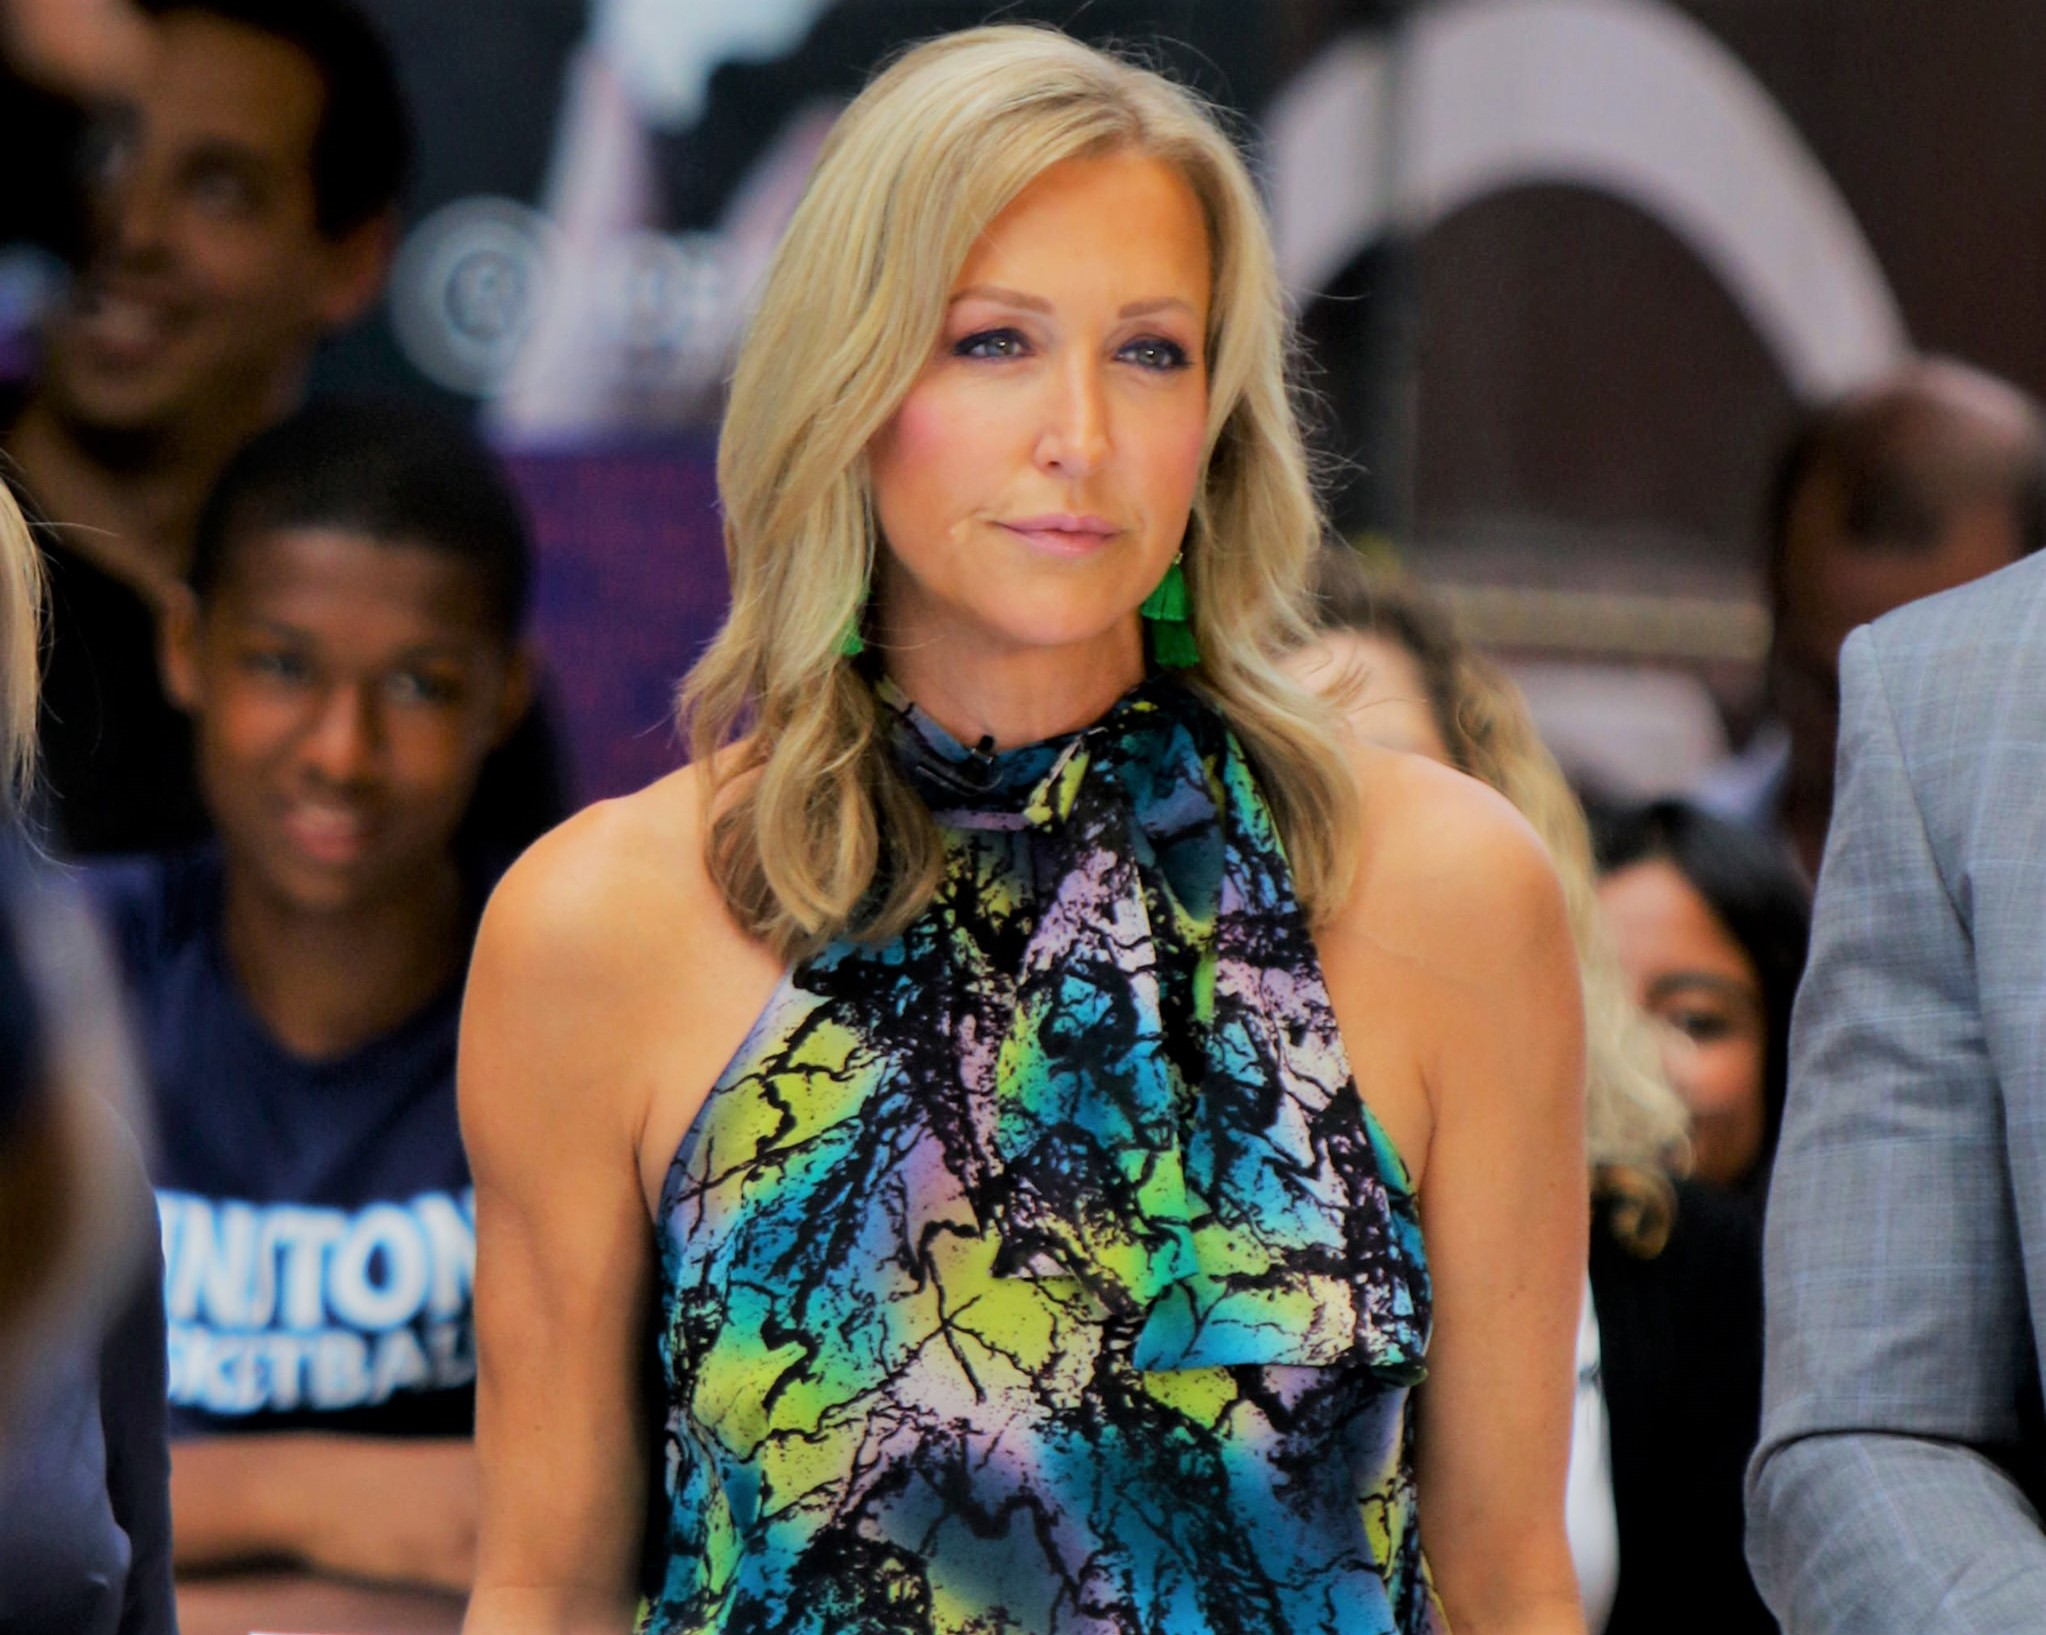 Lara Spencer Says She's 'Deeply Sorry' for 'Stupid' Ballet Comments in On-Air GMA Apology